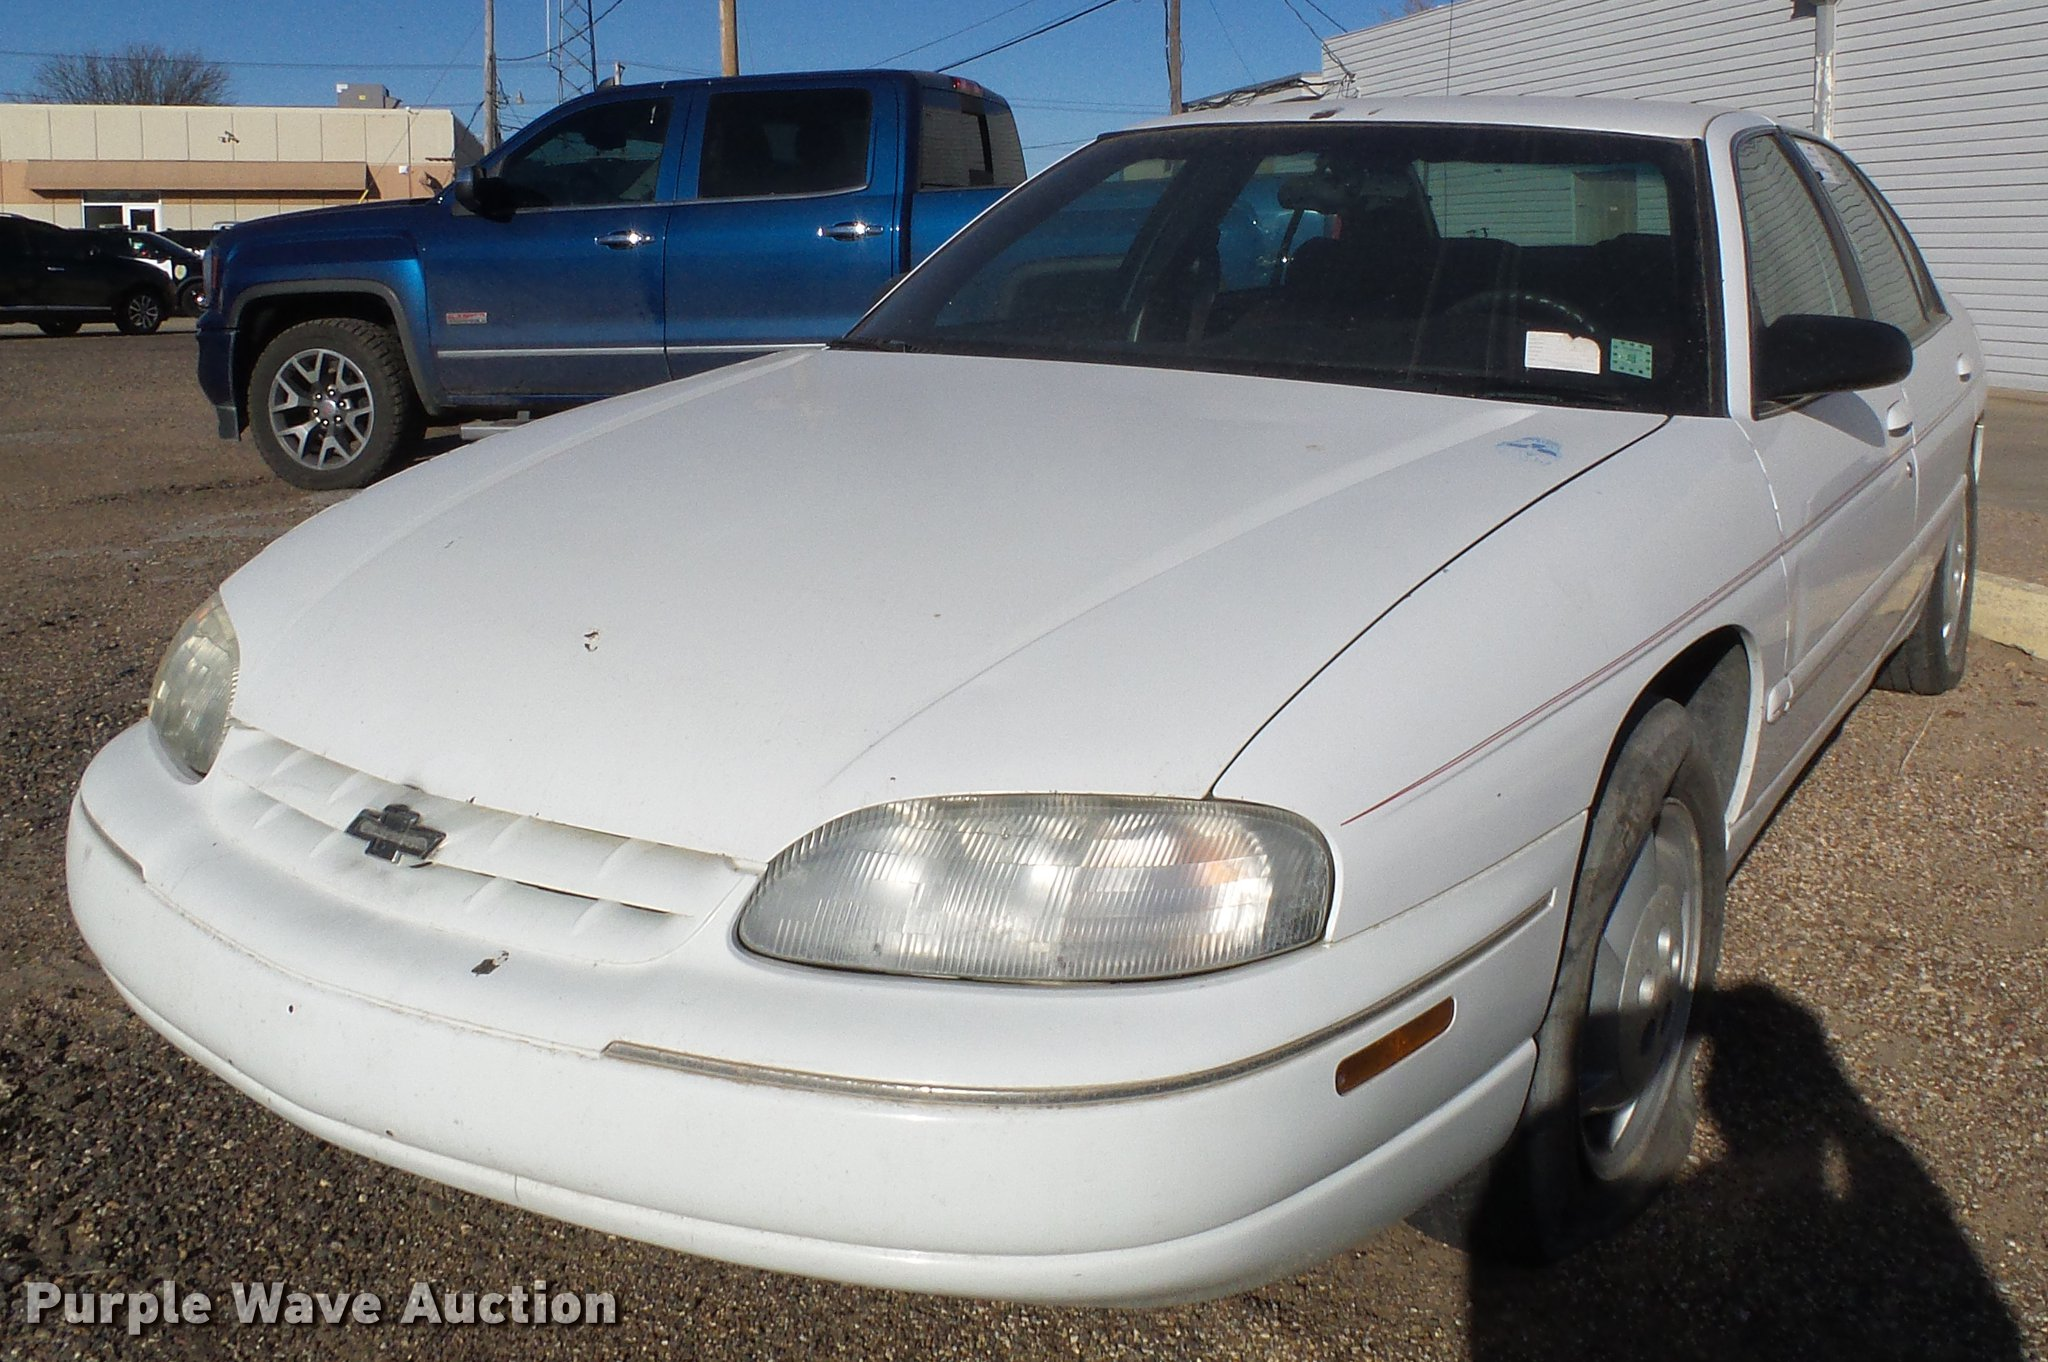 1997 chevrolet lumina in liberal ks item df2876 sold purple wave 1997 chevrolet lumina in liberal ks